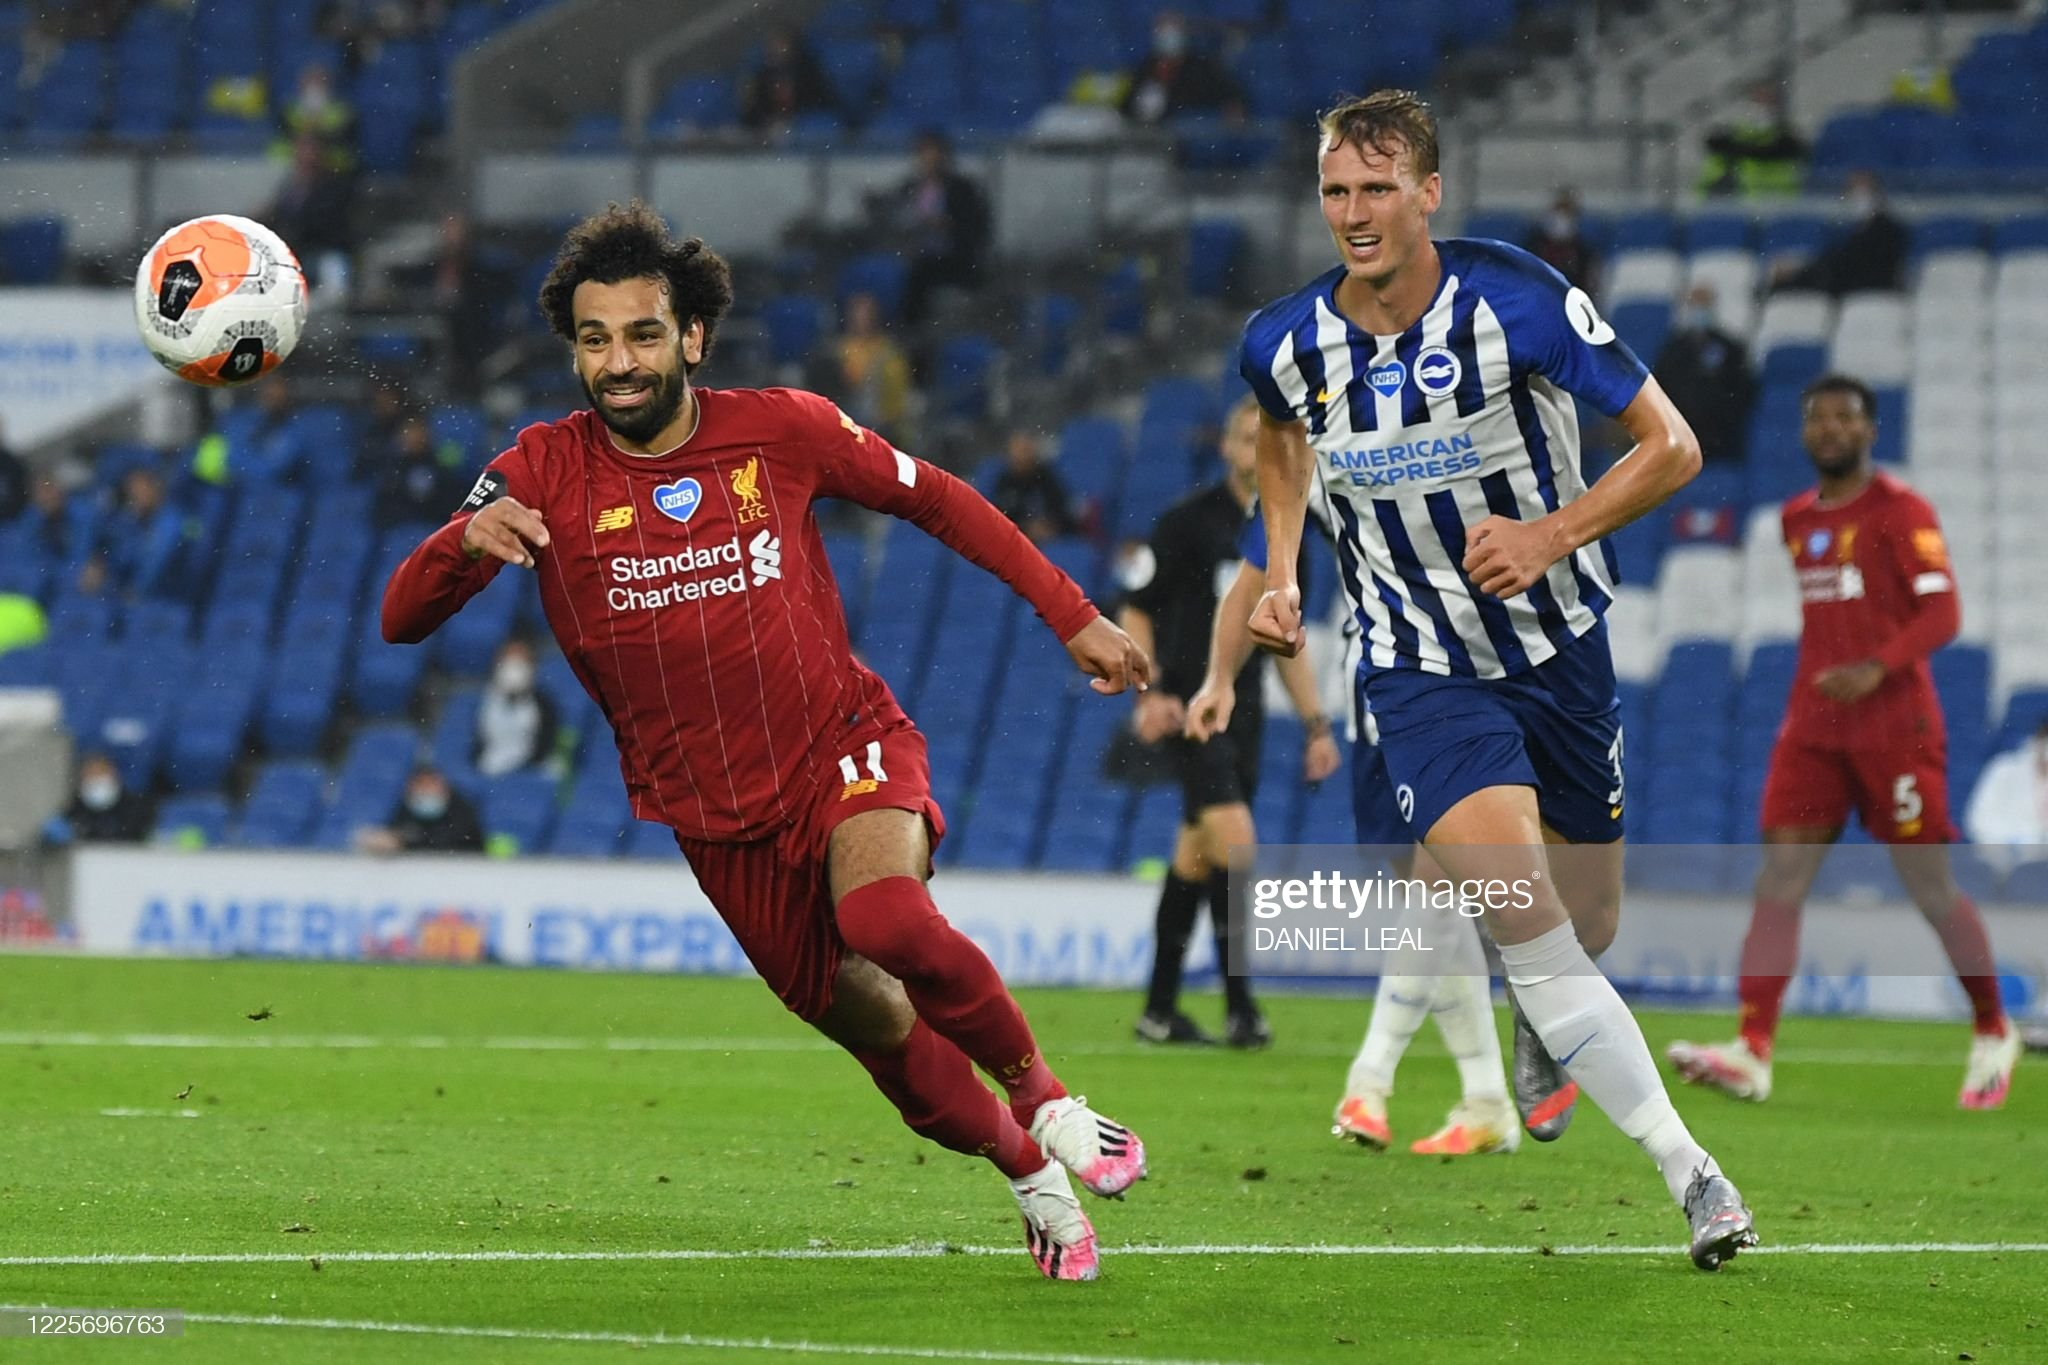 Brighton vs Liverpool preview, prediction and odds